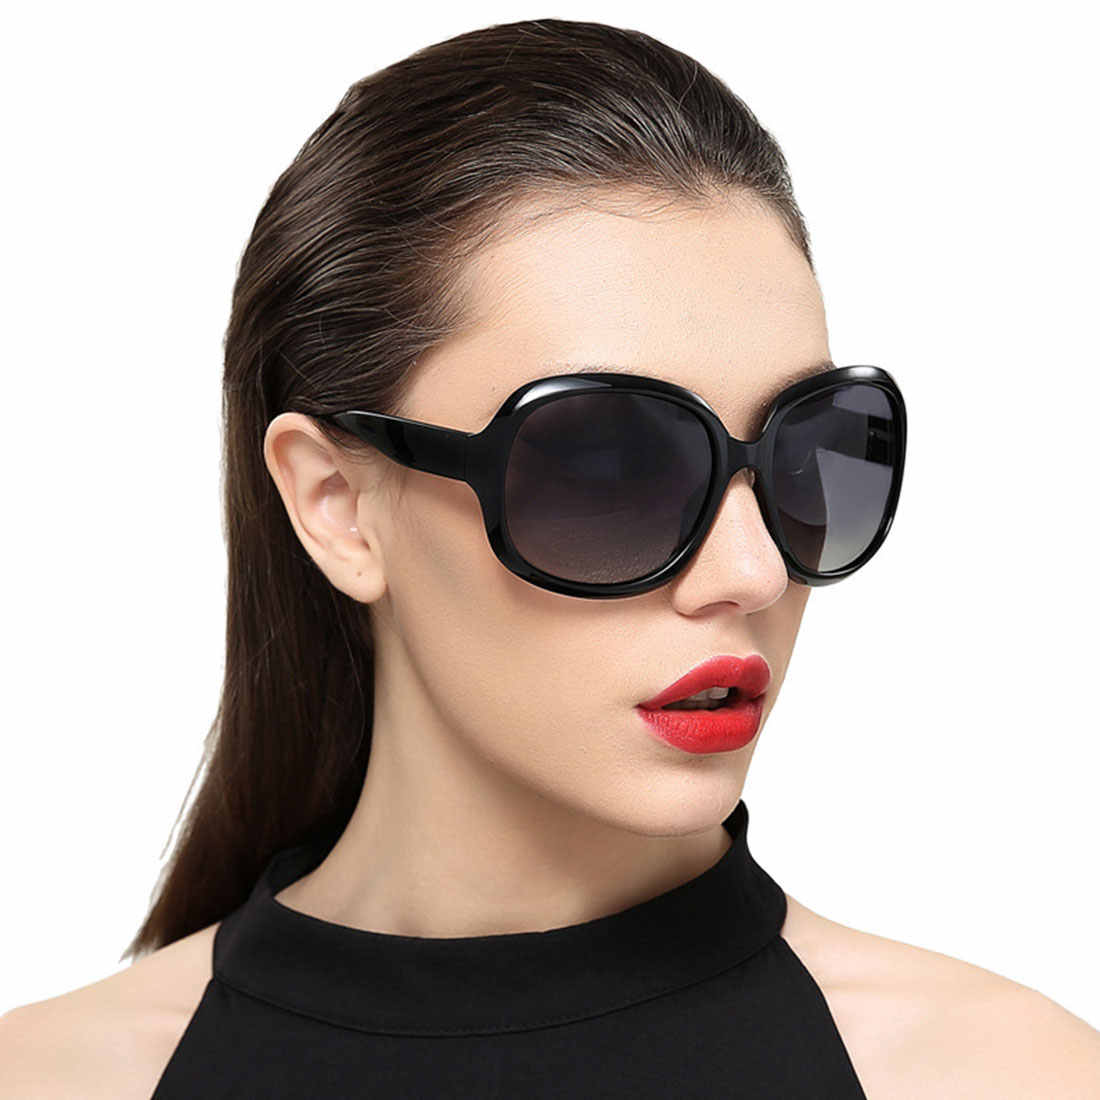 7a960d8f955 2019 NEW Brand Summer Sunglasses Women Sun Glasses Vintage 5 Colors Fashion  Big Frame UV400 Oculos